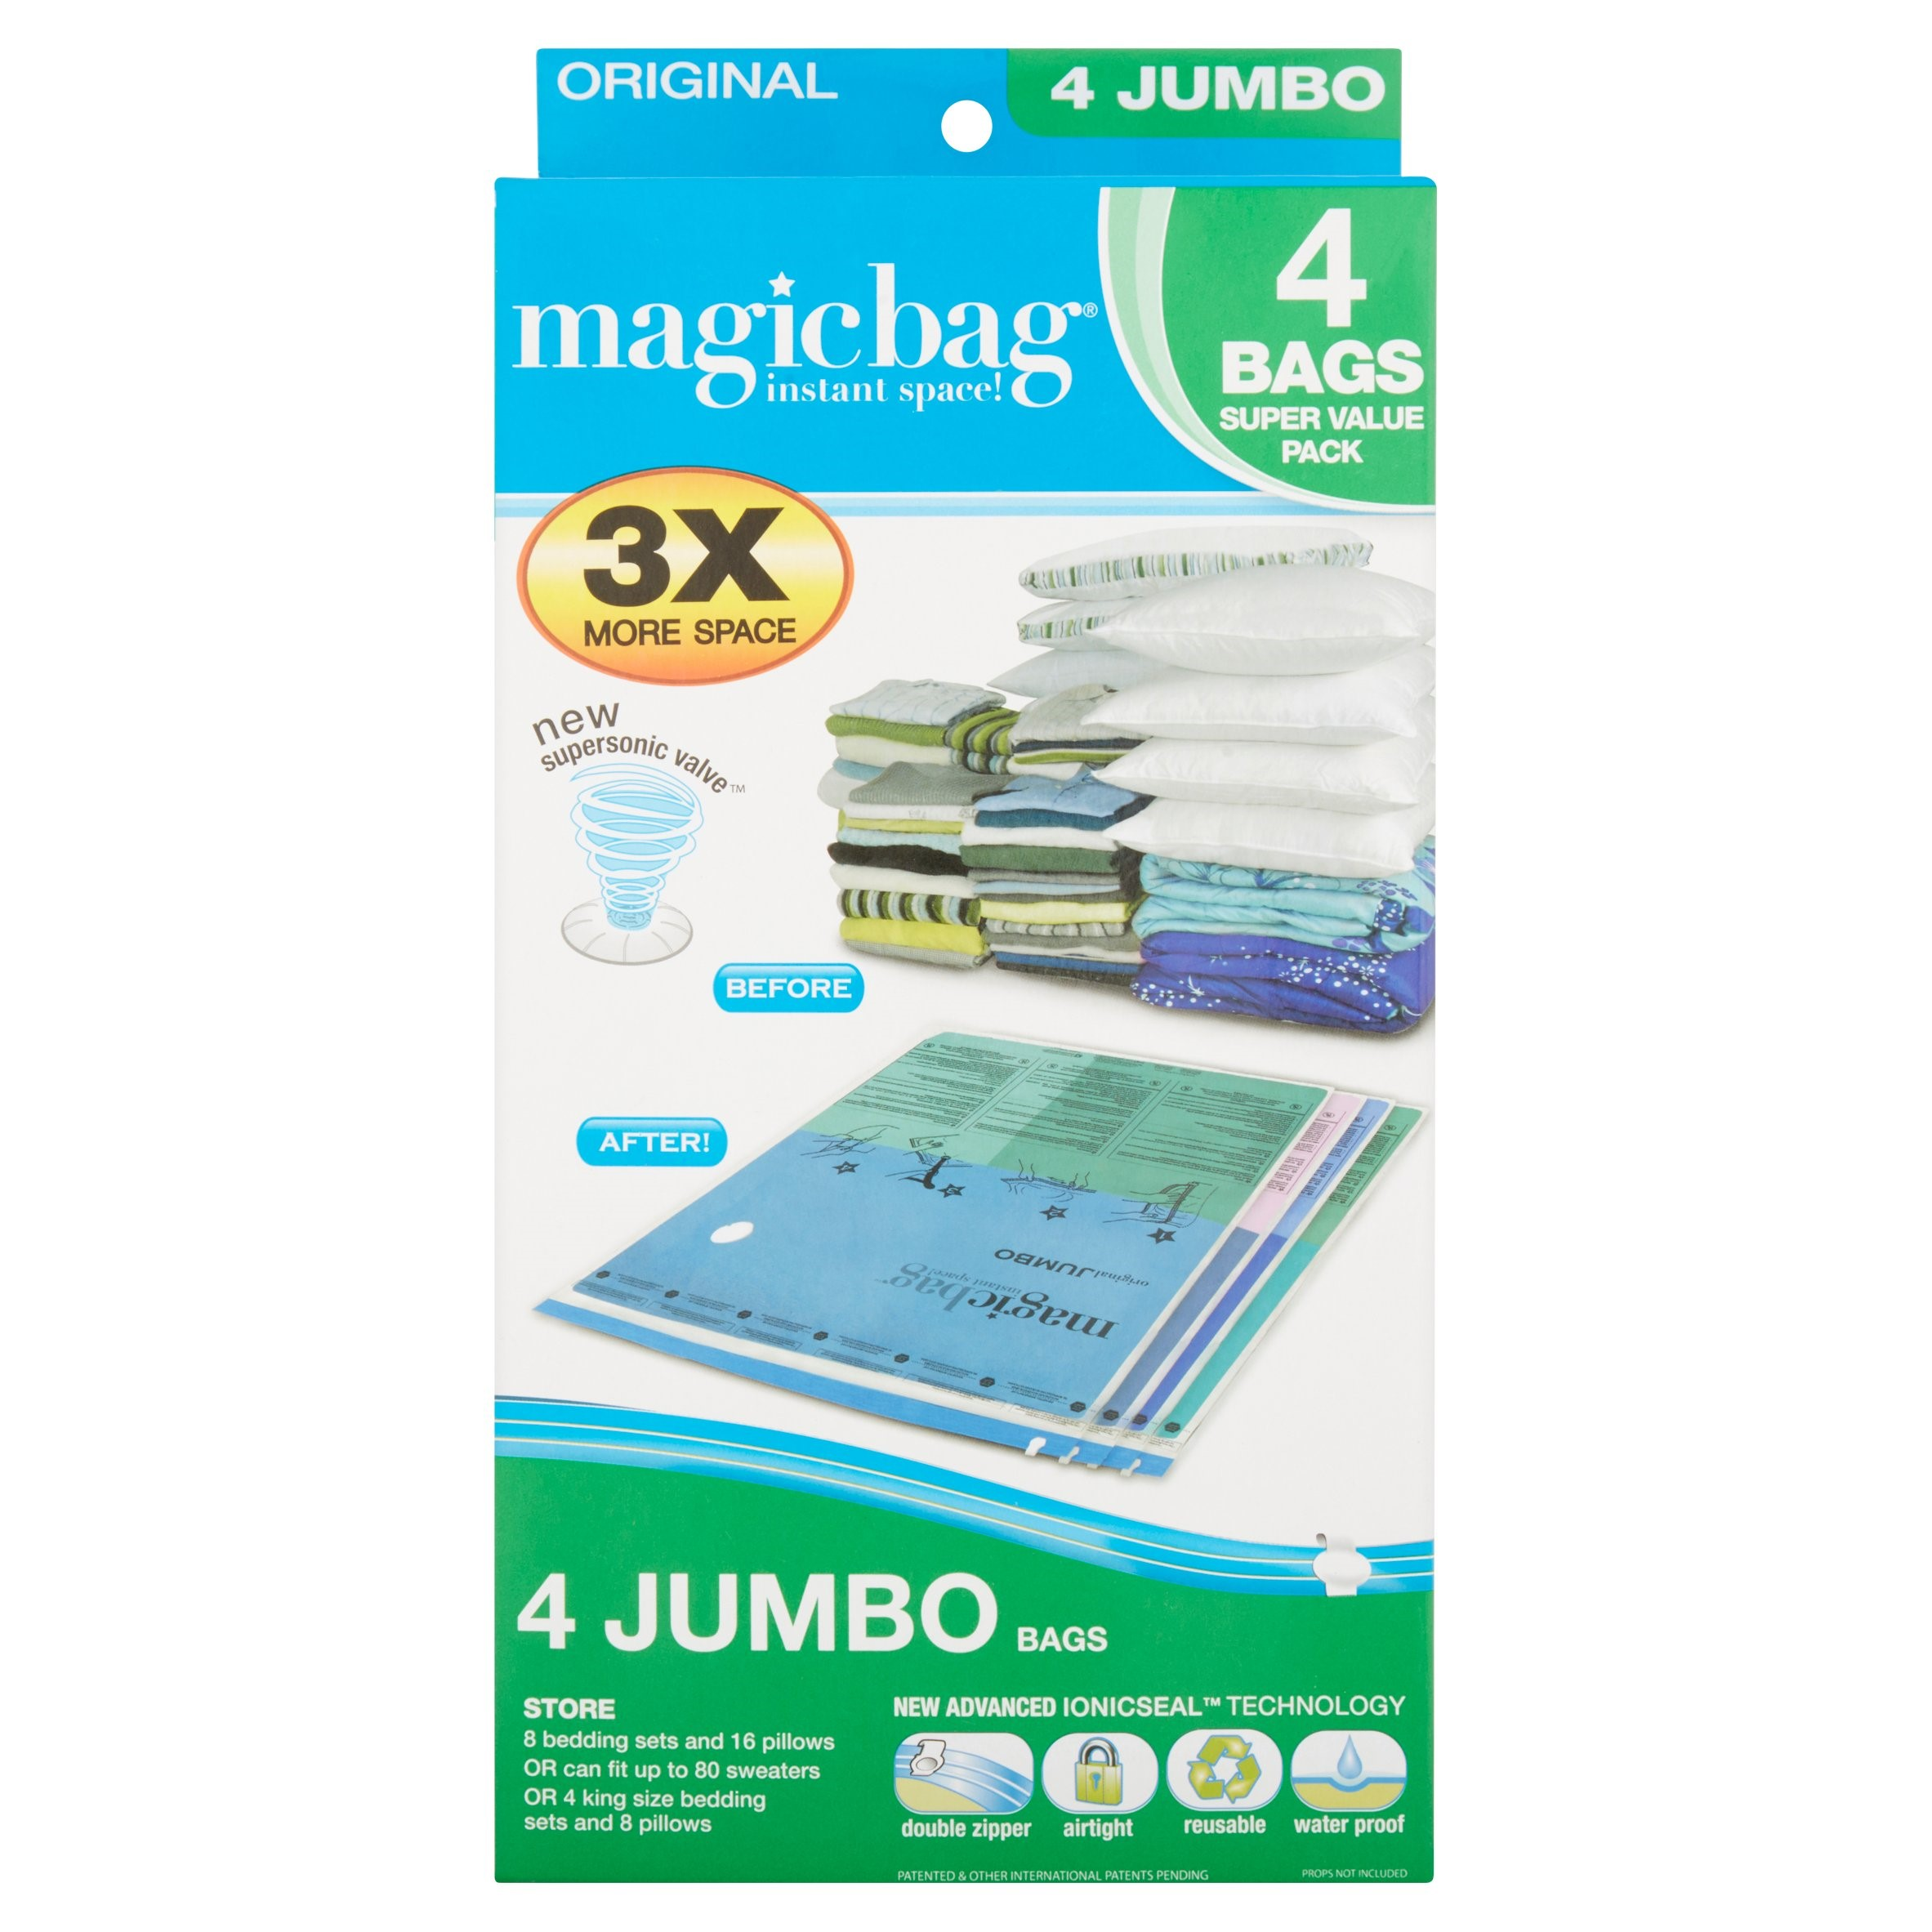 Magicbag Instant Space Jumbo Bags Super Value Pack, 4 count